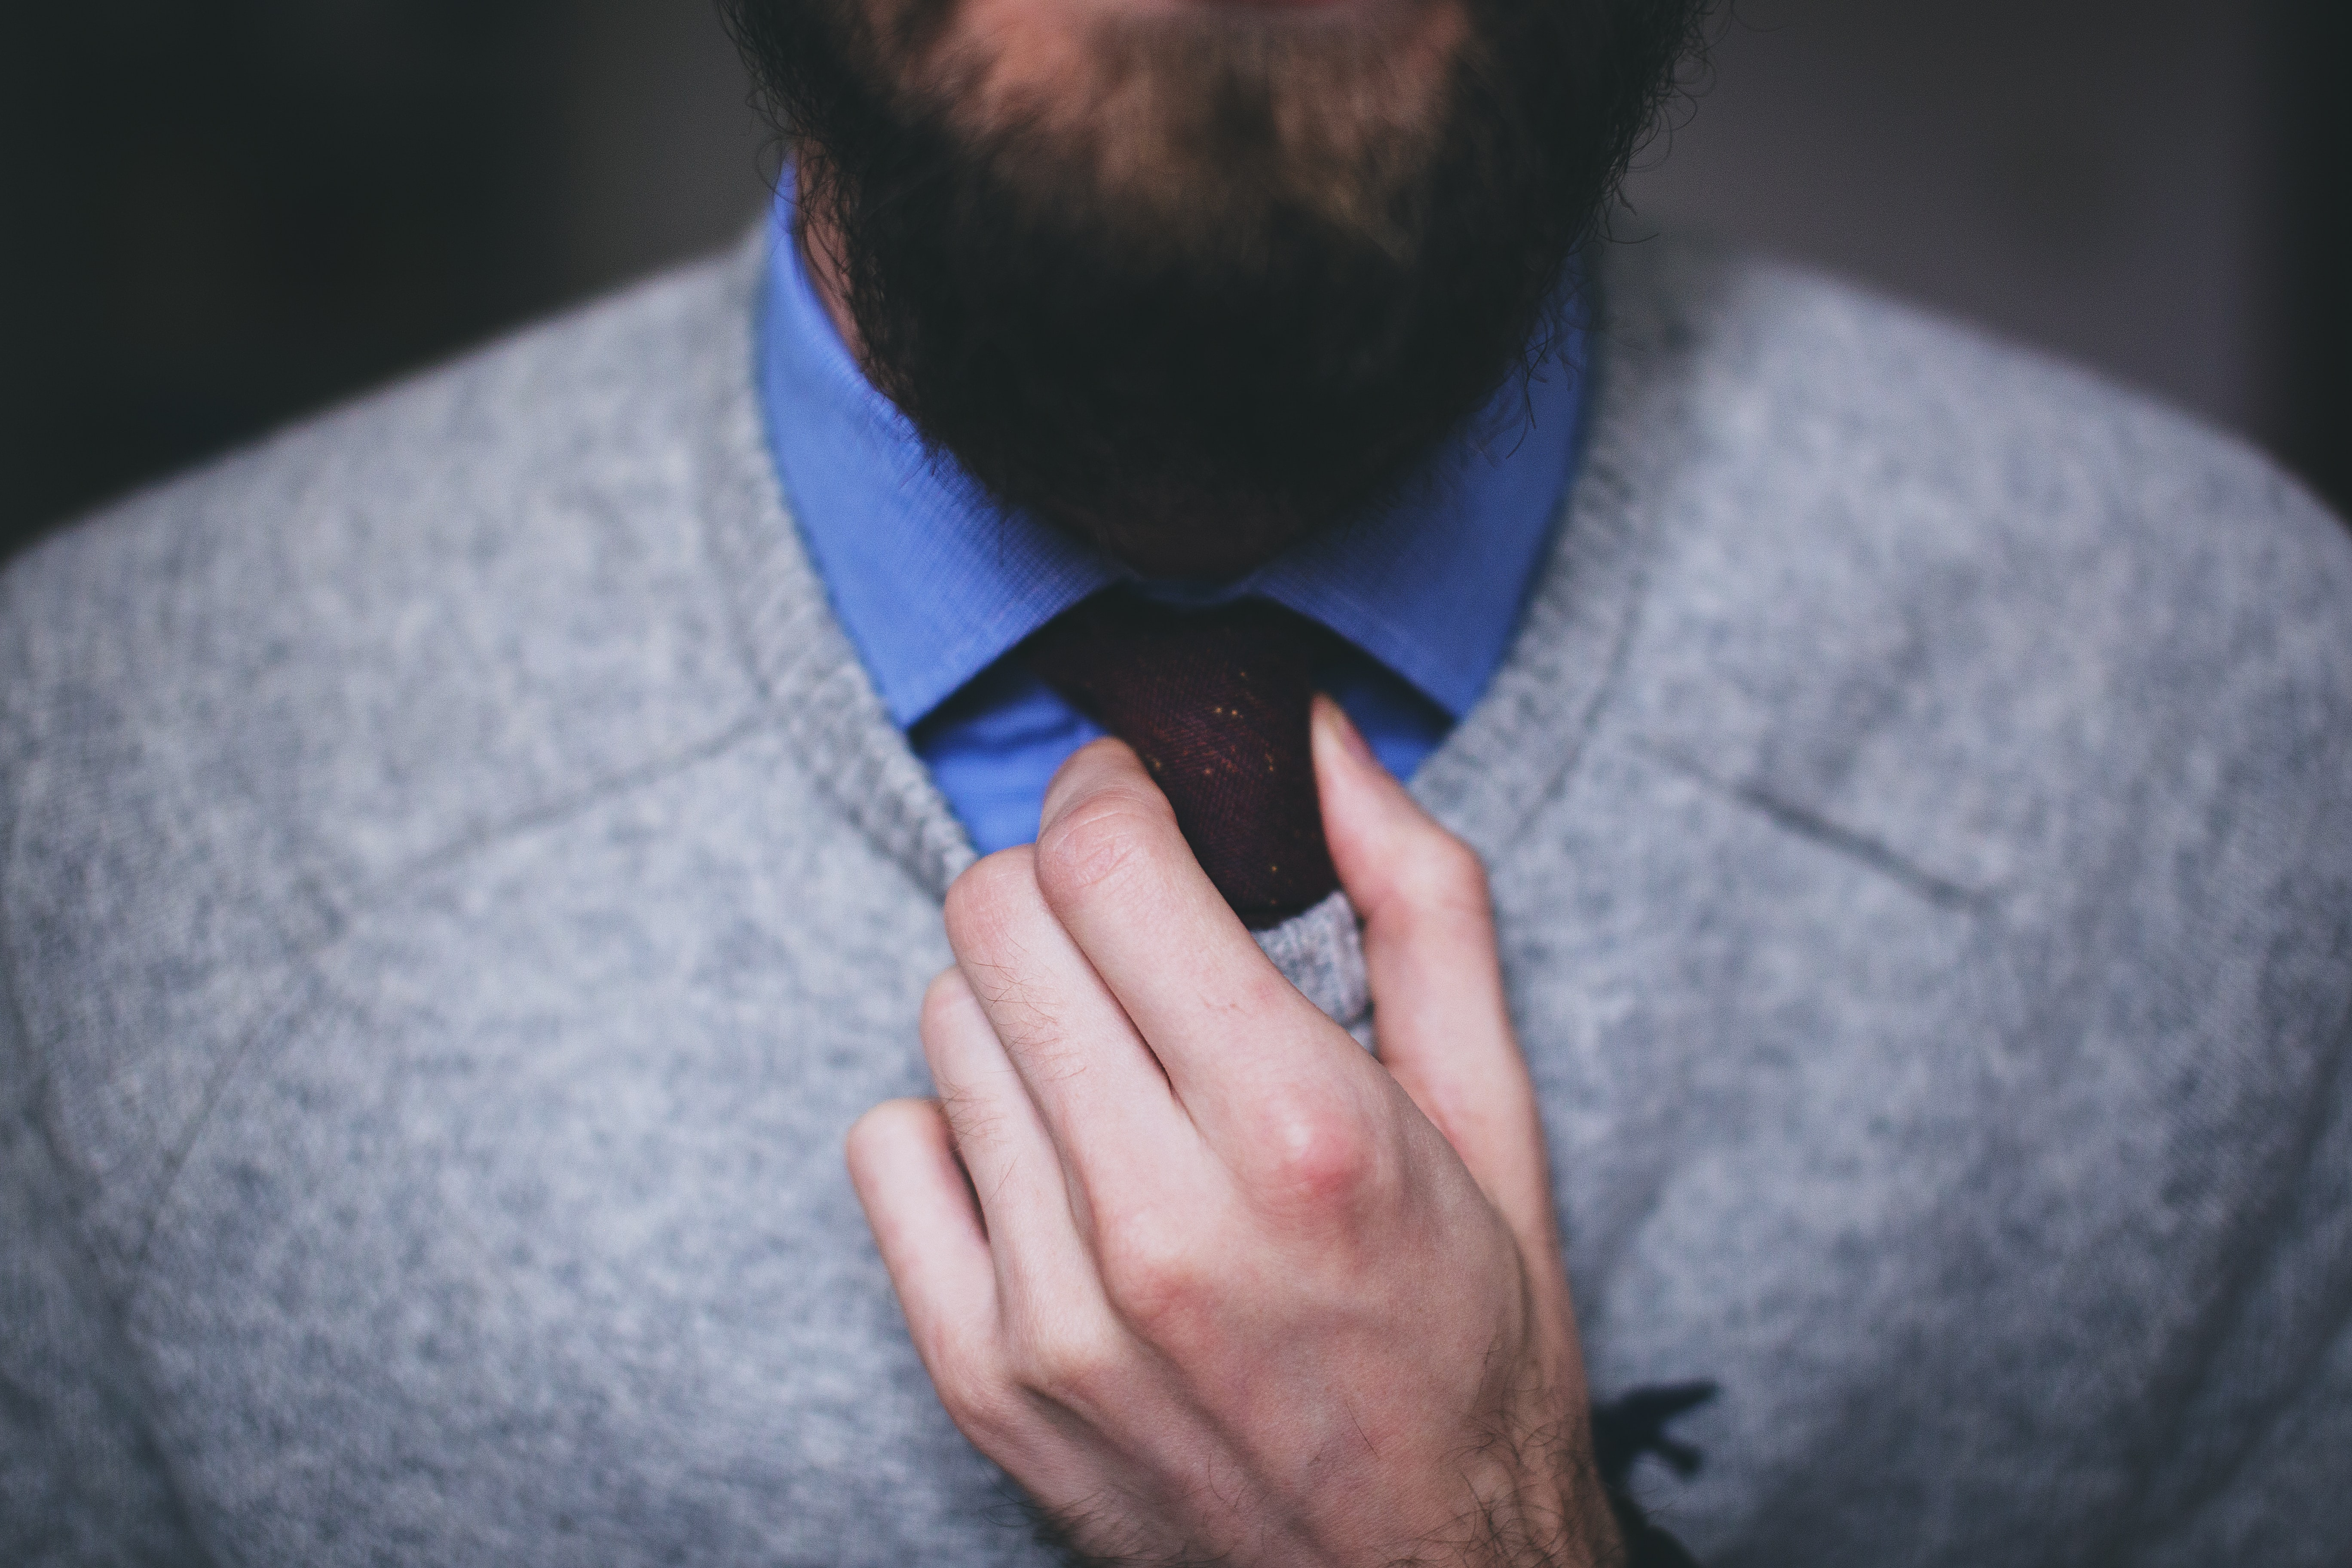 A bearded man in a blue shirt and gray sweater adjusting his tie